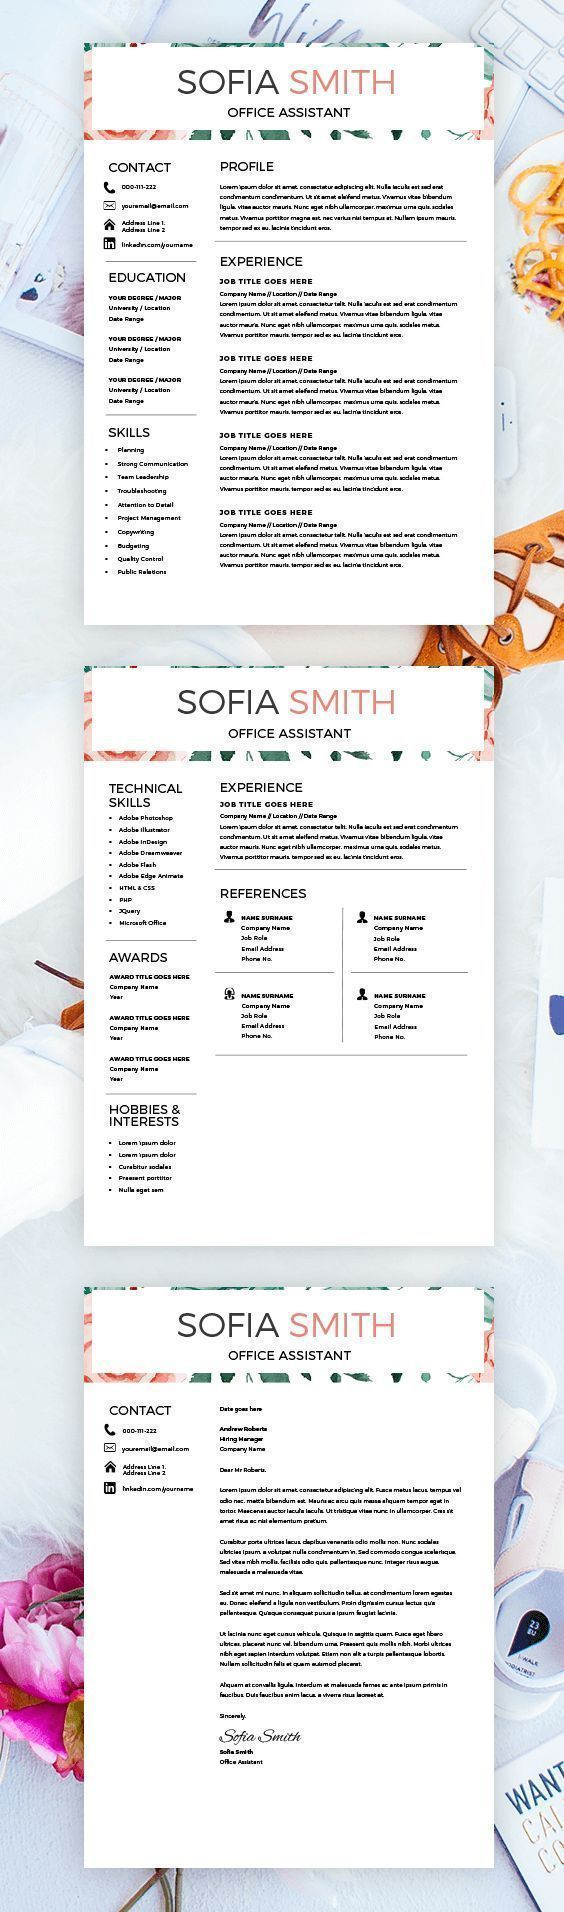 Resume For Female Cv Design Resume Download Ms Word Resume